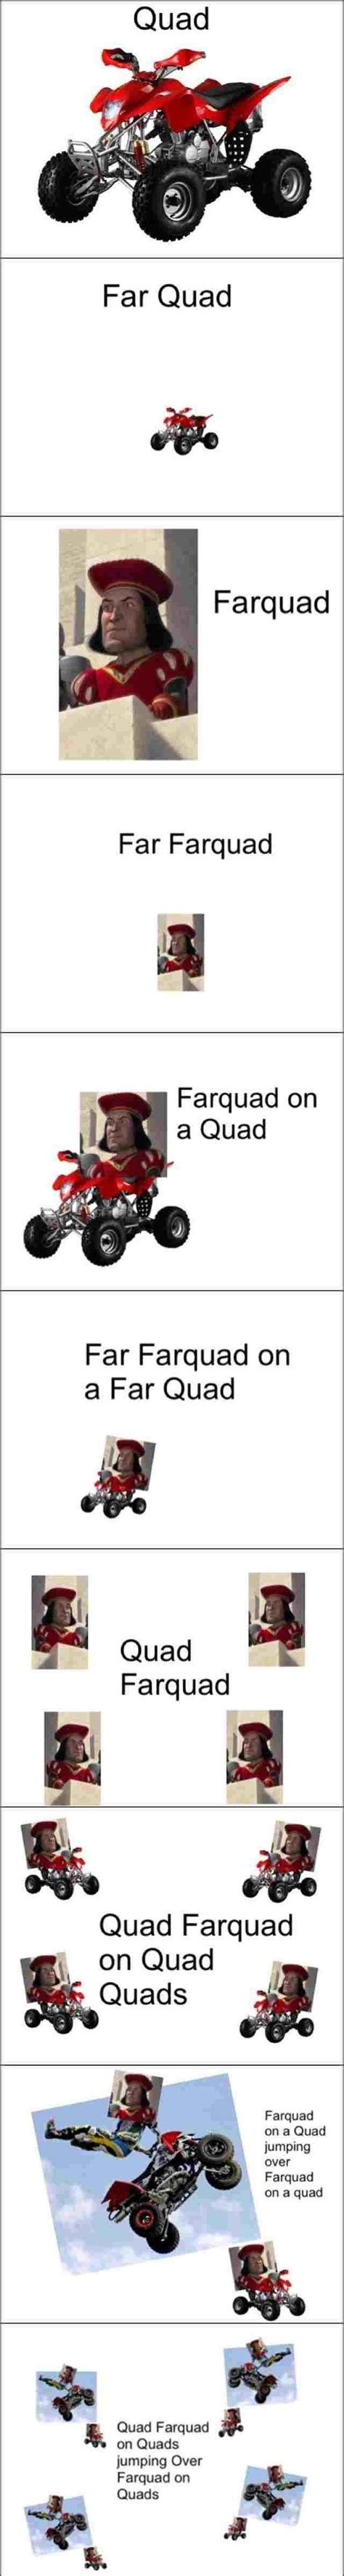 Quad Memes - farquad and quads lord farquaad know your meme